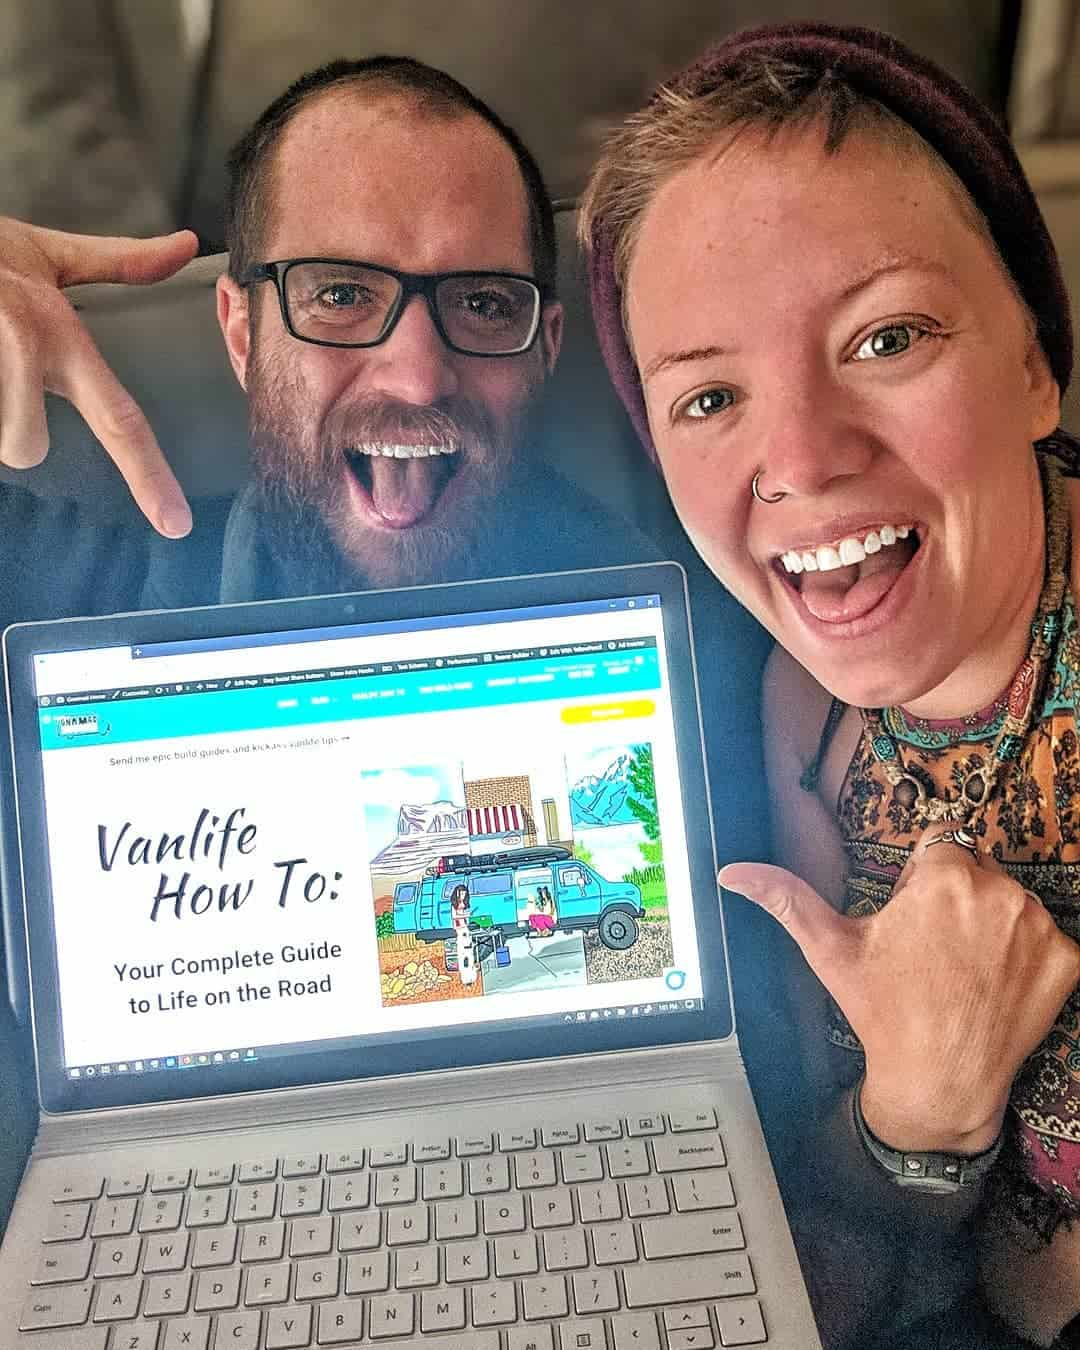 Jayme and John post in their van by their computer, where they educate people about van life